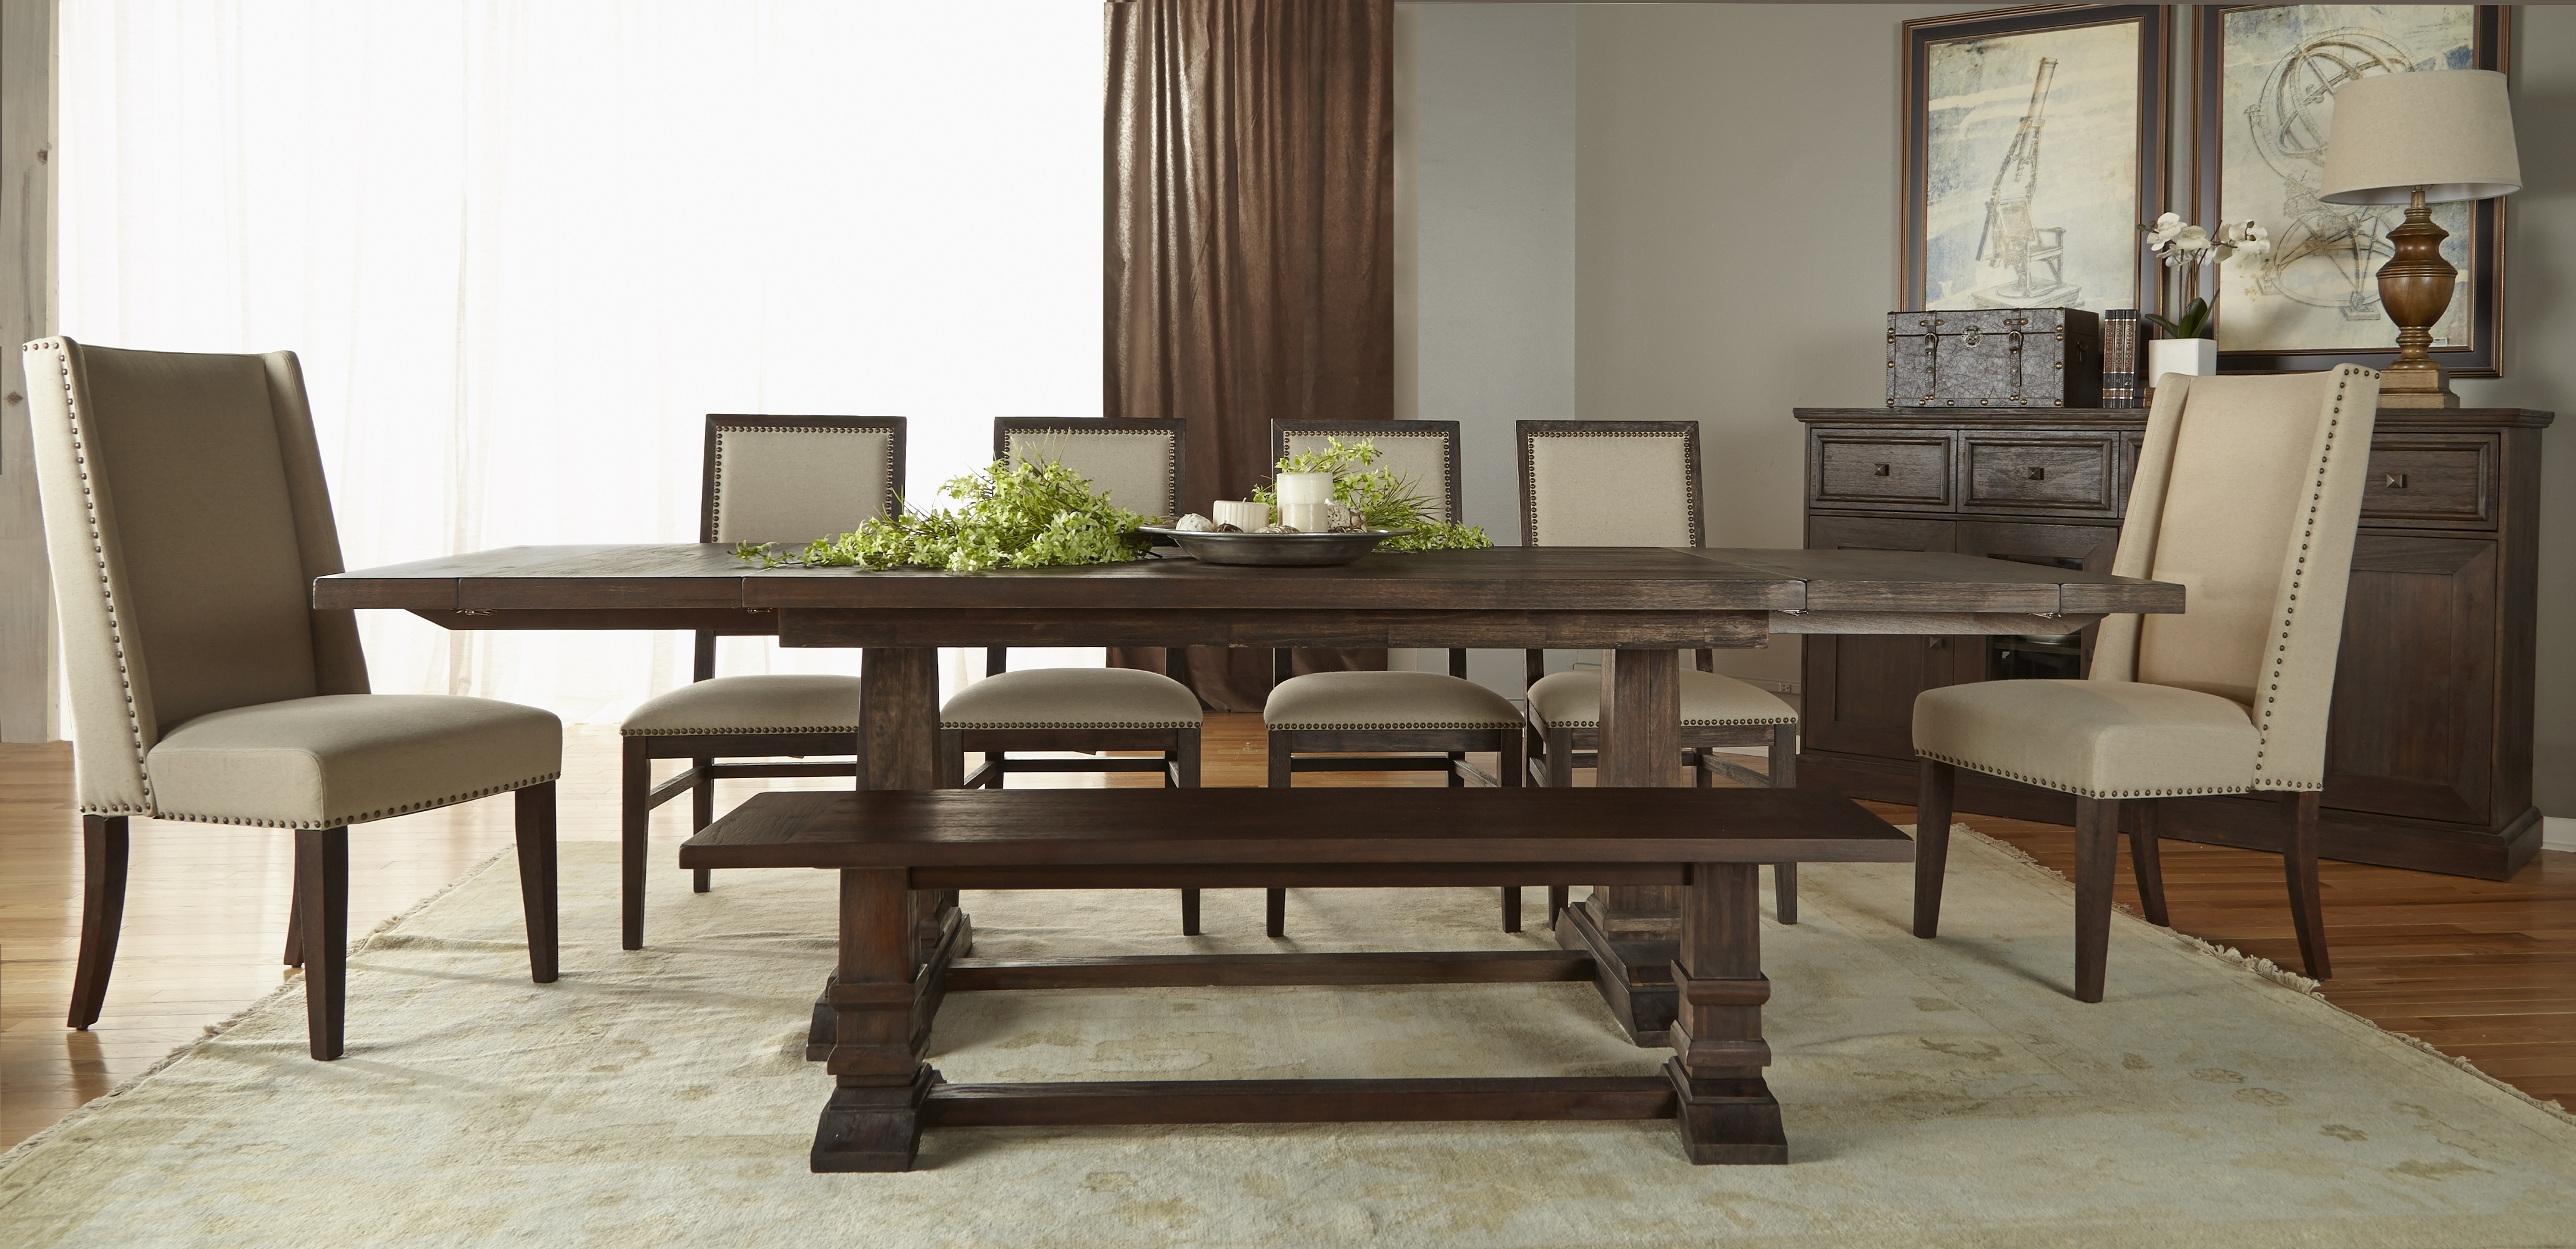 Widely Used Hudson Rectangle Extension Dining Table In Java Dining Tables (View 19 of 25)